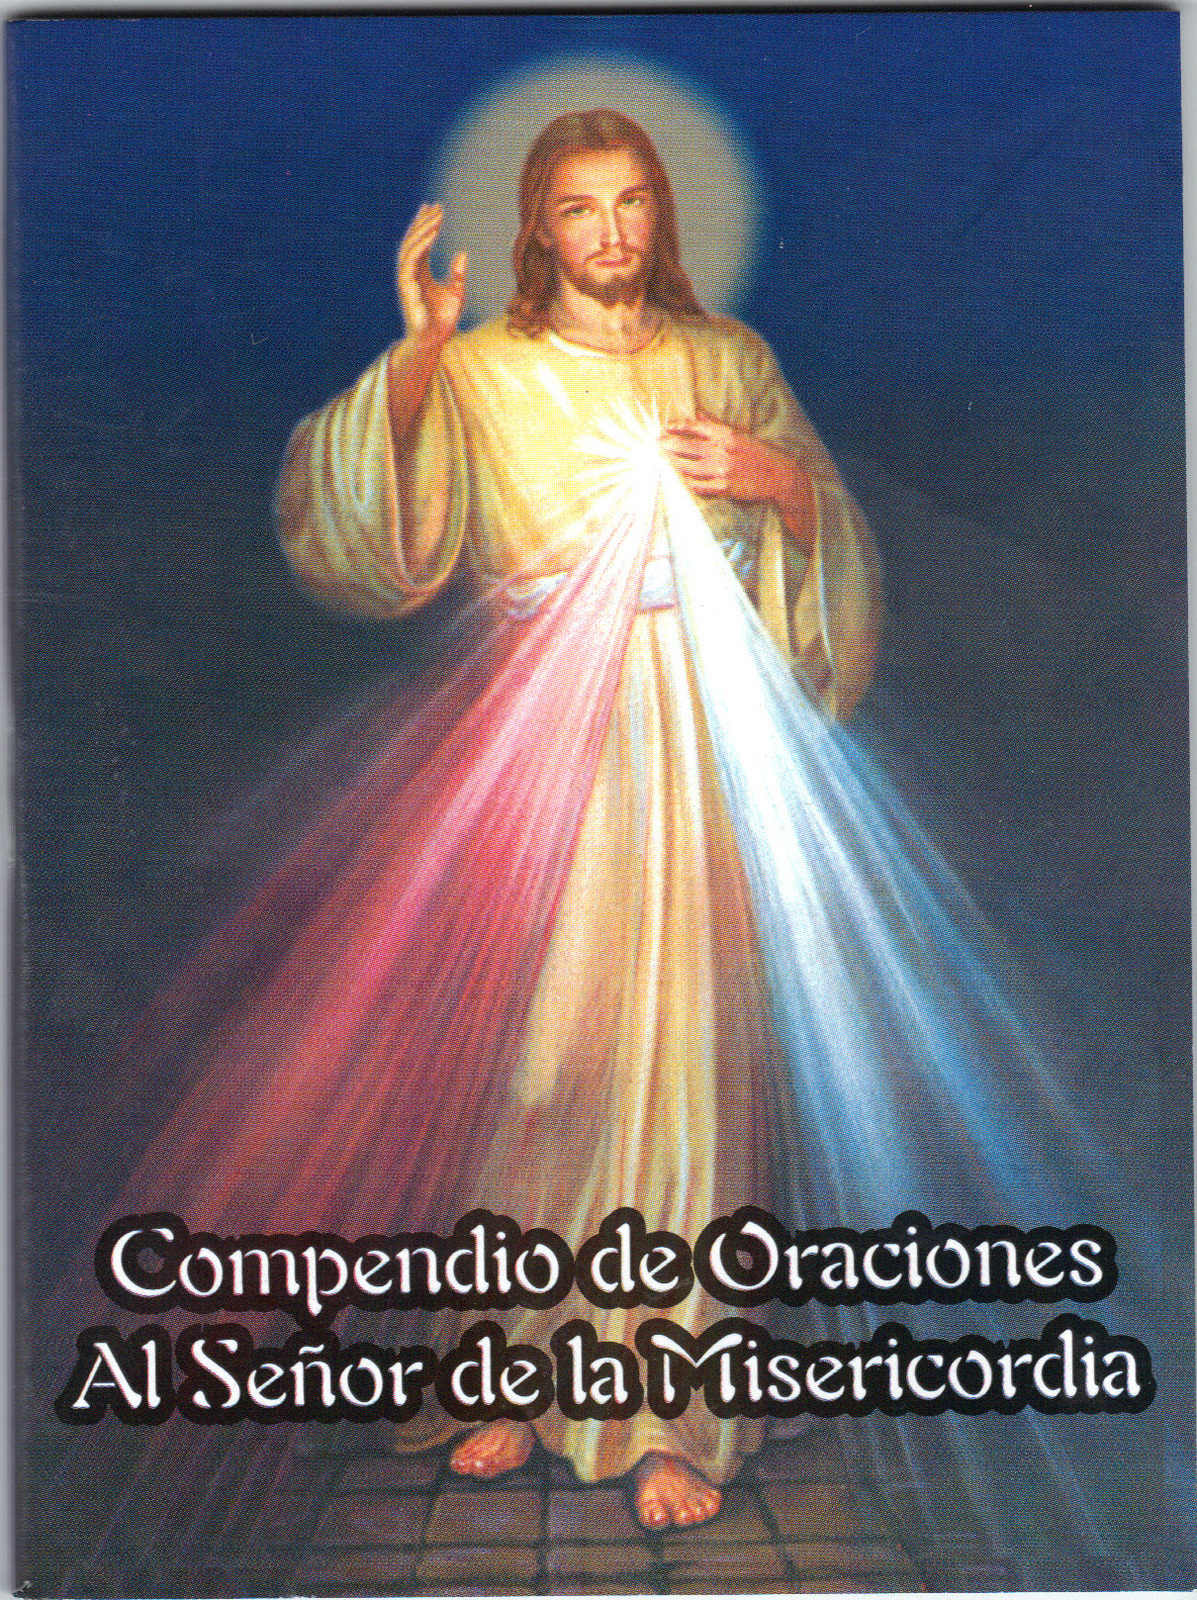 Primary image for Compendio de Oraciones al Senor de la Misericordia